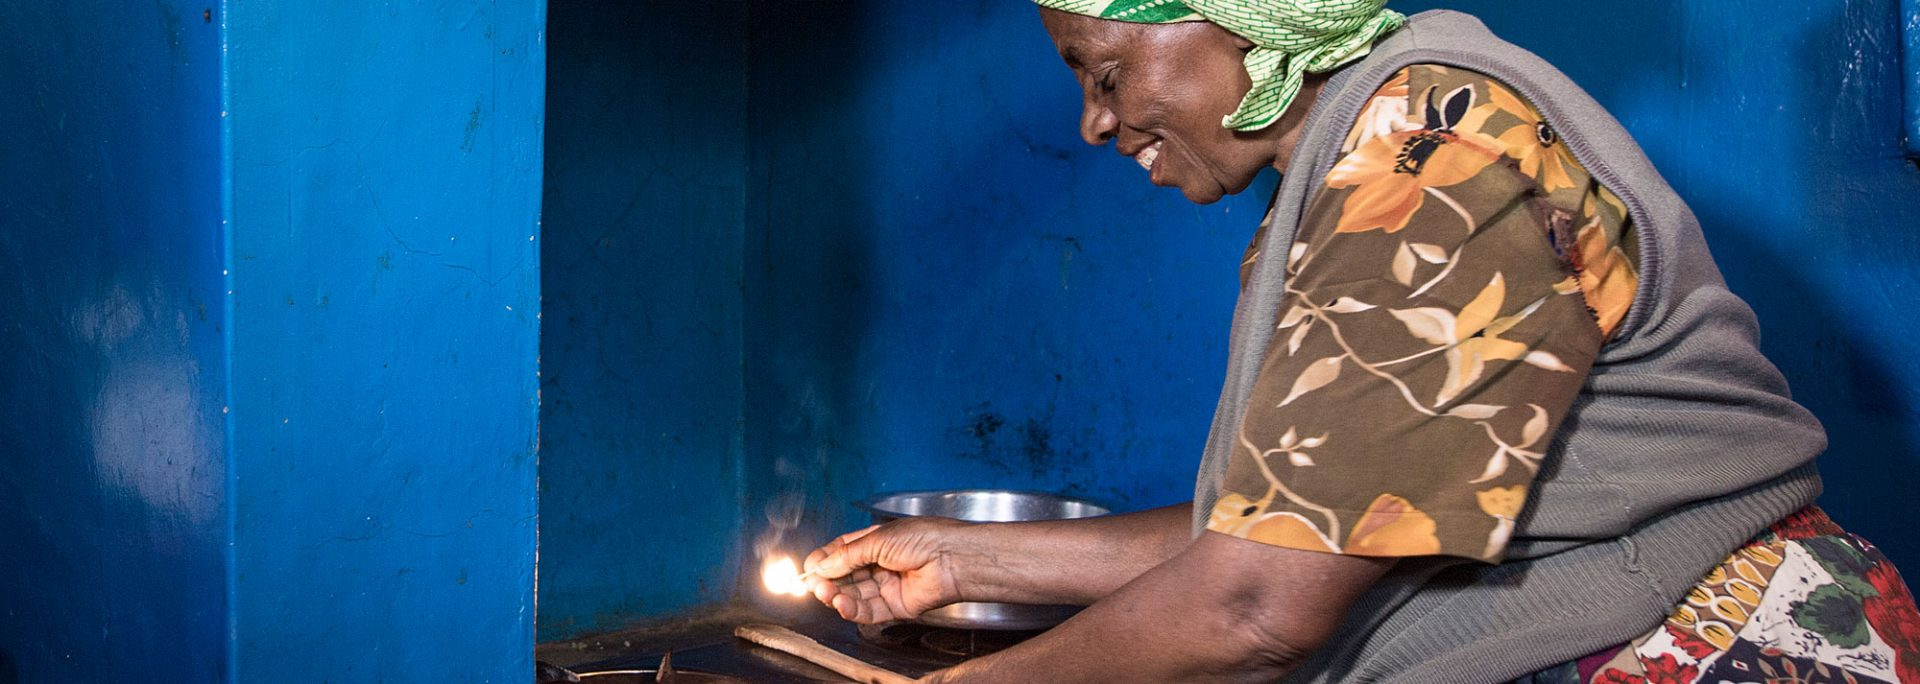 happy lady using biogas to cook